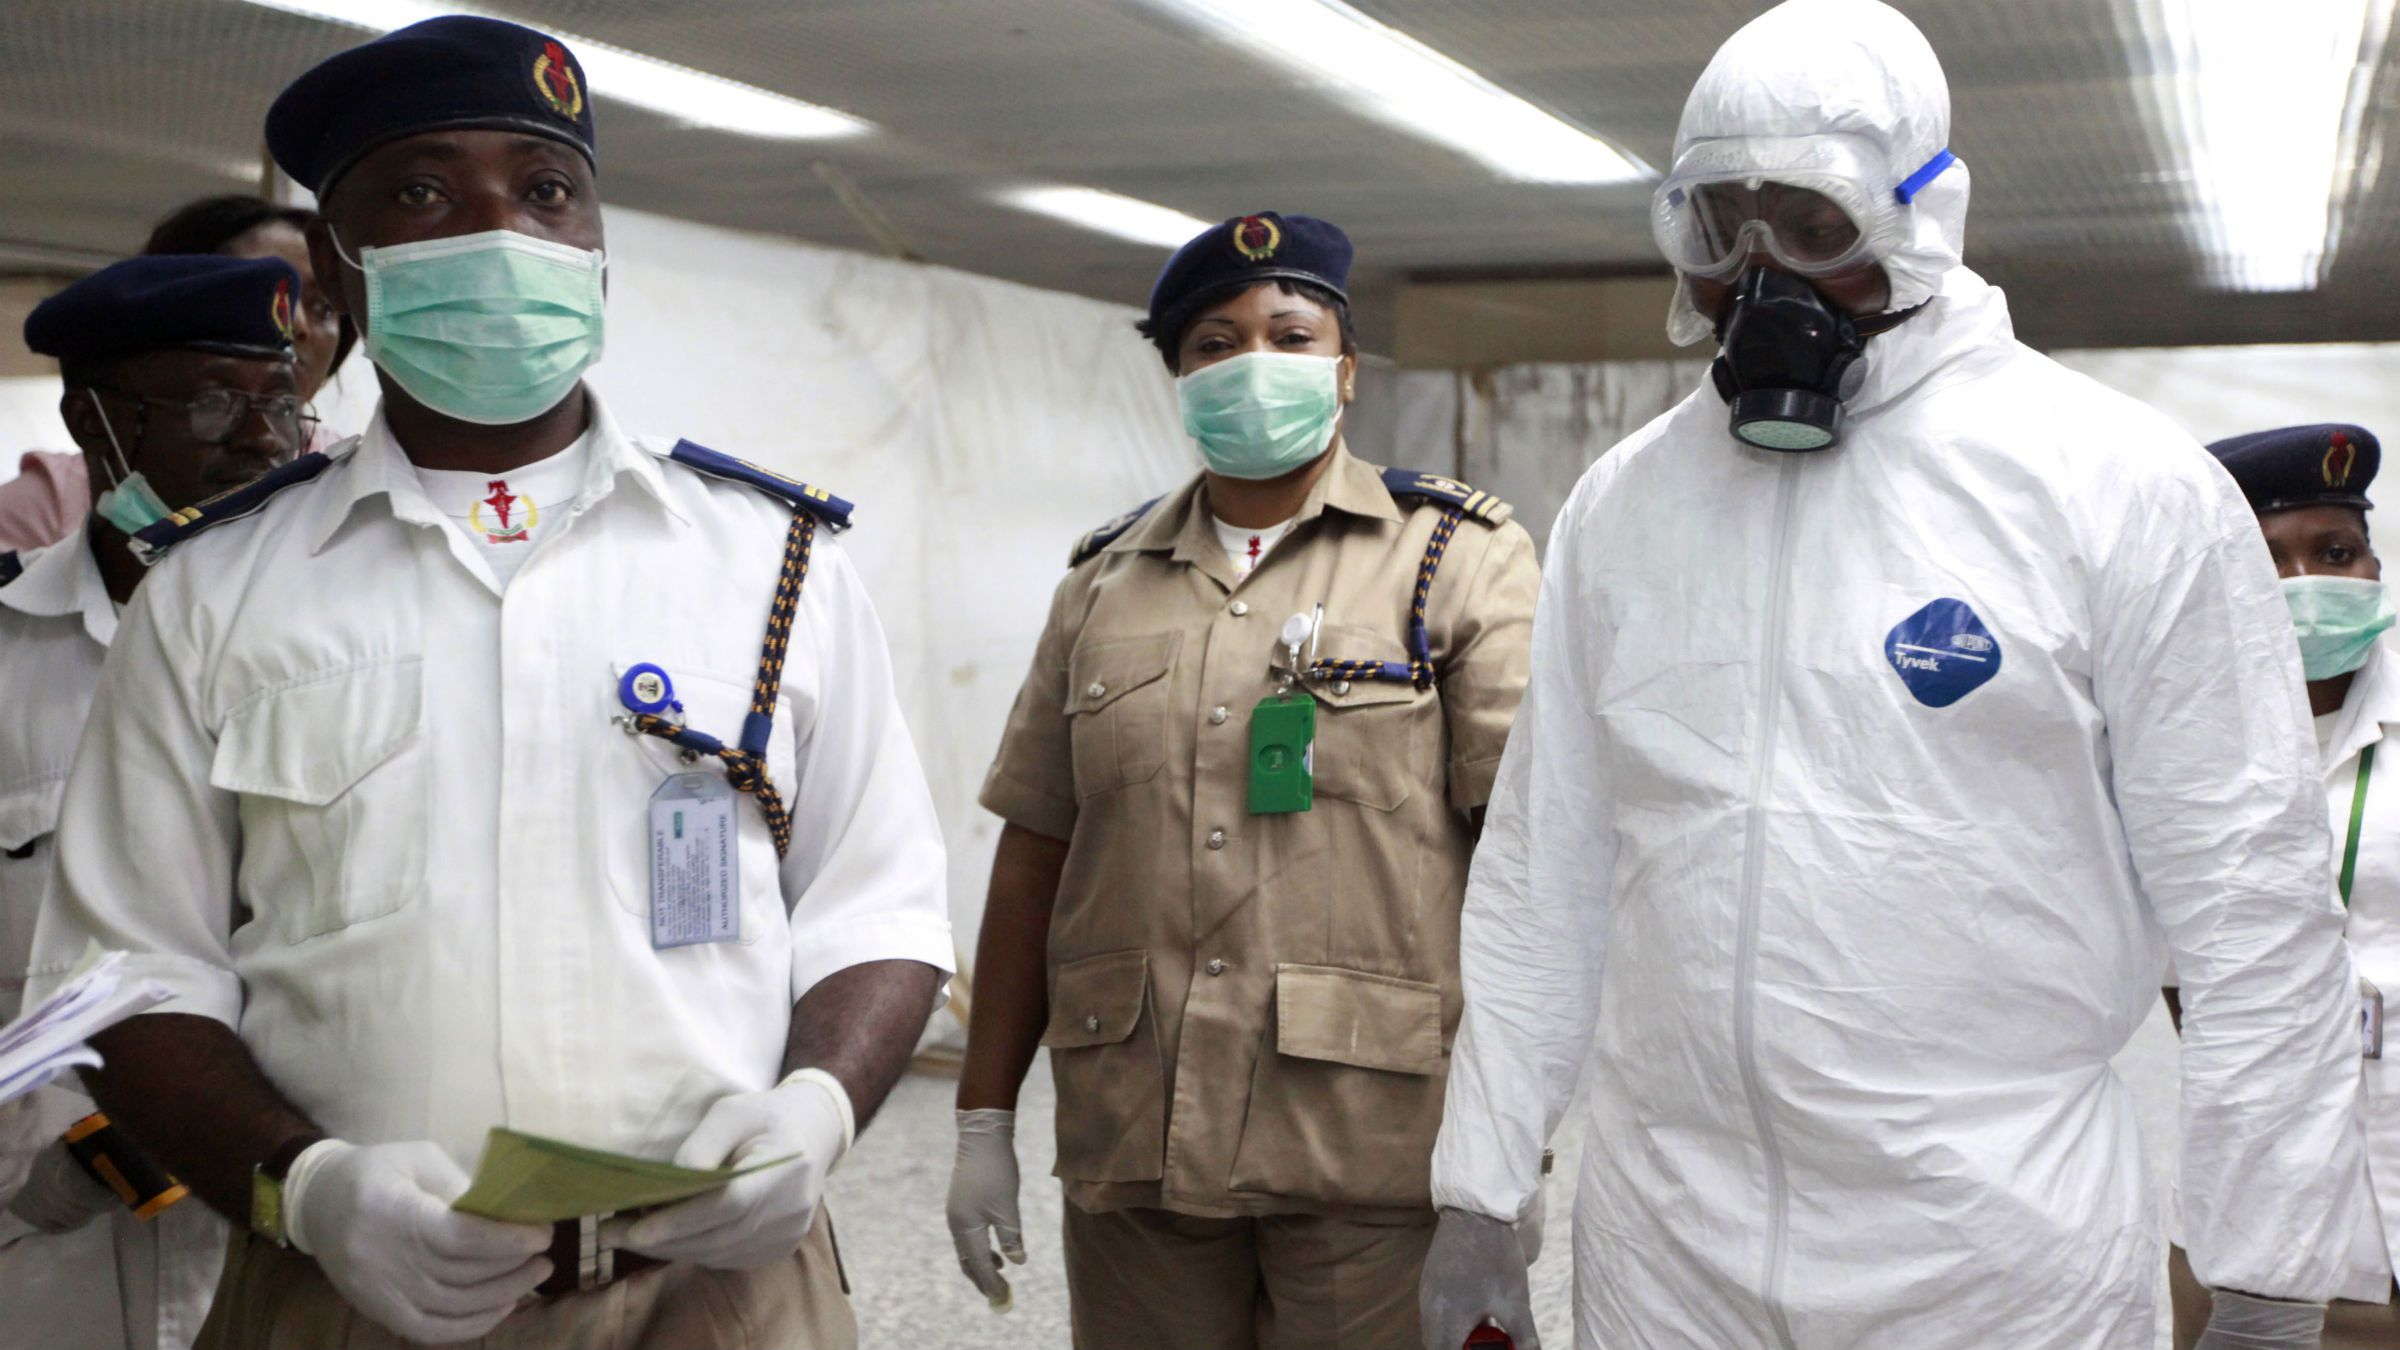 Nigerian health officials wait to screen passengers at the arrivals hall of Murtala Muhammed International Airport in Lagos, Nigeria, Monday, Aug. 4, 2014. Nigerian authorities on Monday confirmed a second case of Ebola in Africa's most populous country, an alarming setback as officials across the region battle to stop the spread of a disease that has killed more than 700 people. (AP Photo/Sunday Alamba)